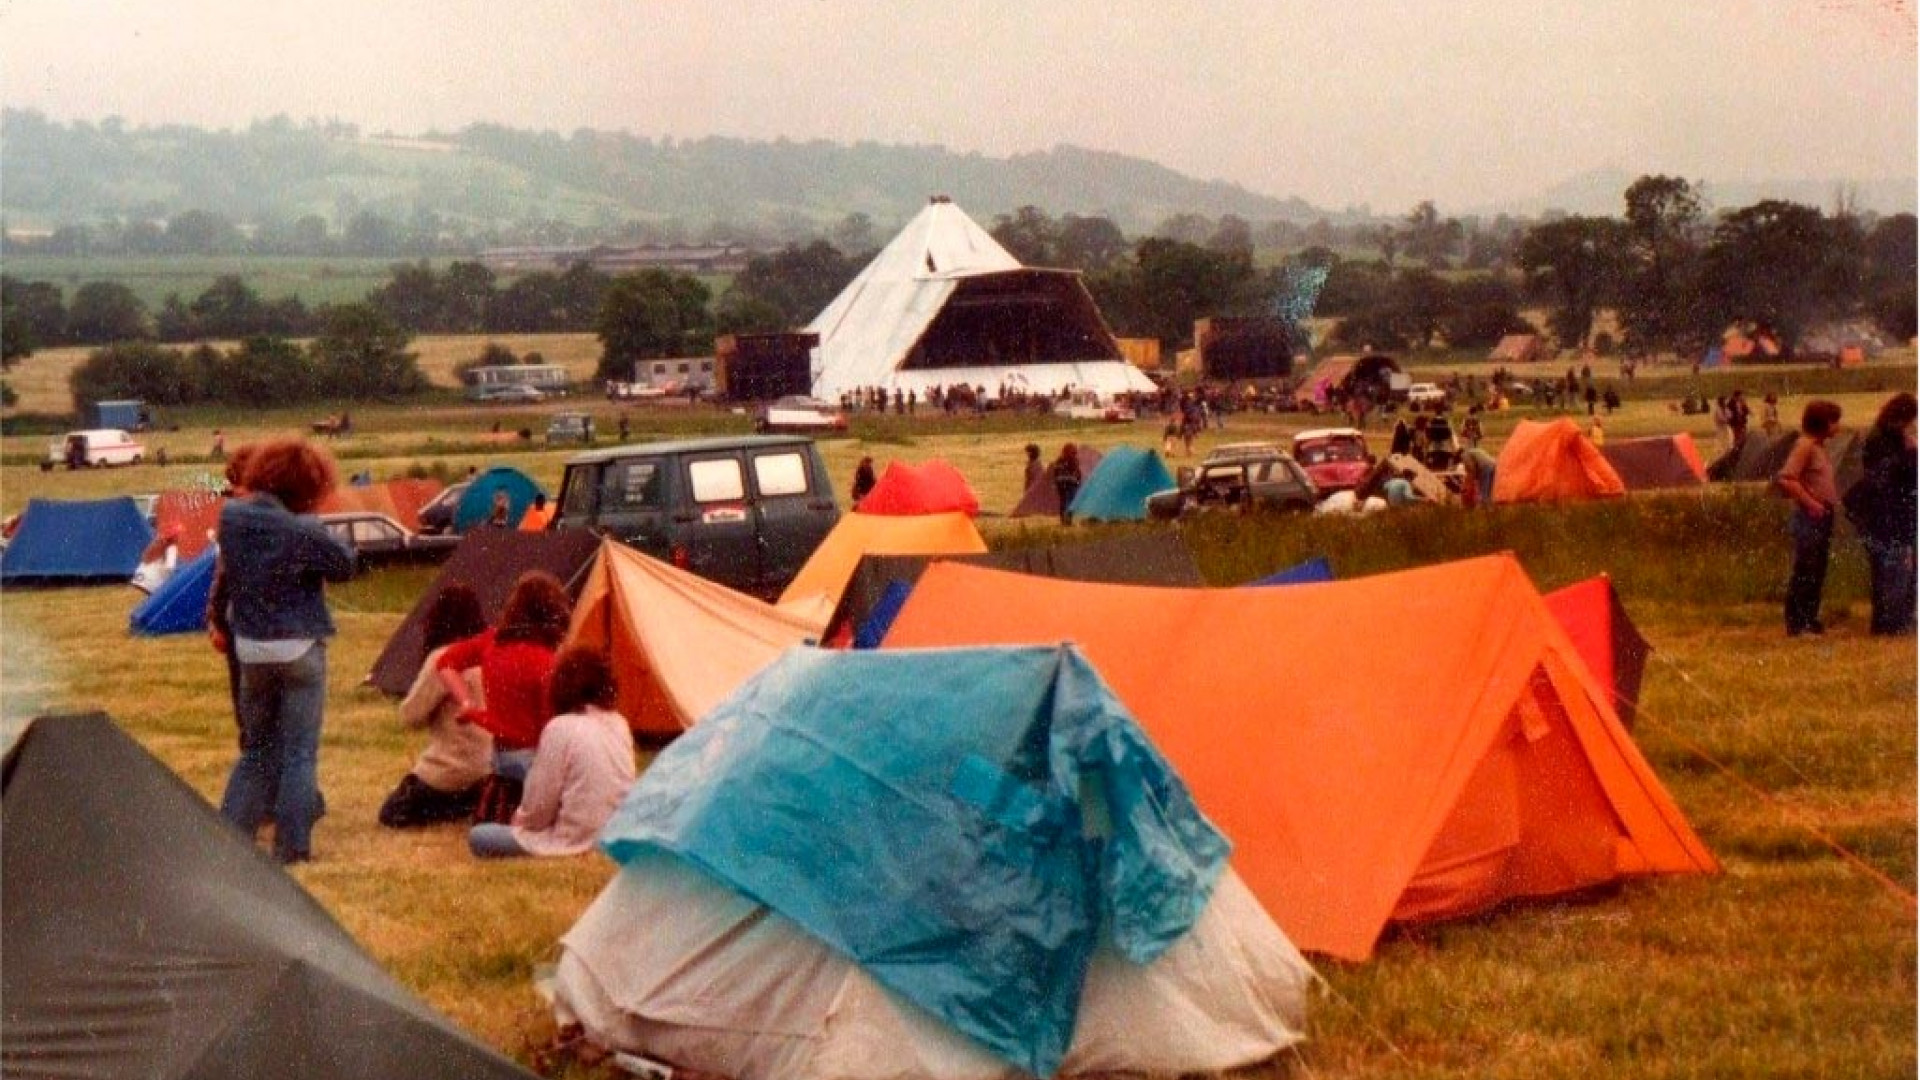 View of the Pyramid Stage at Glastonbury, 1981